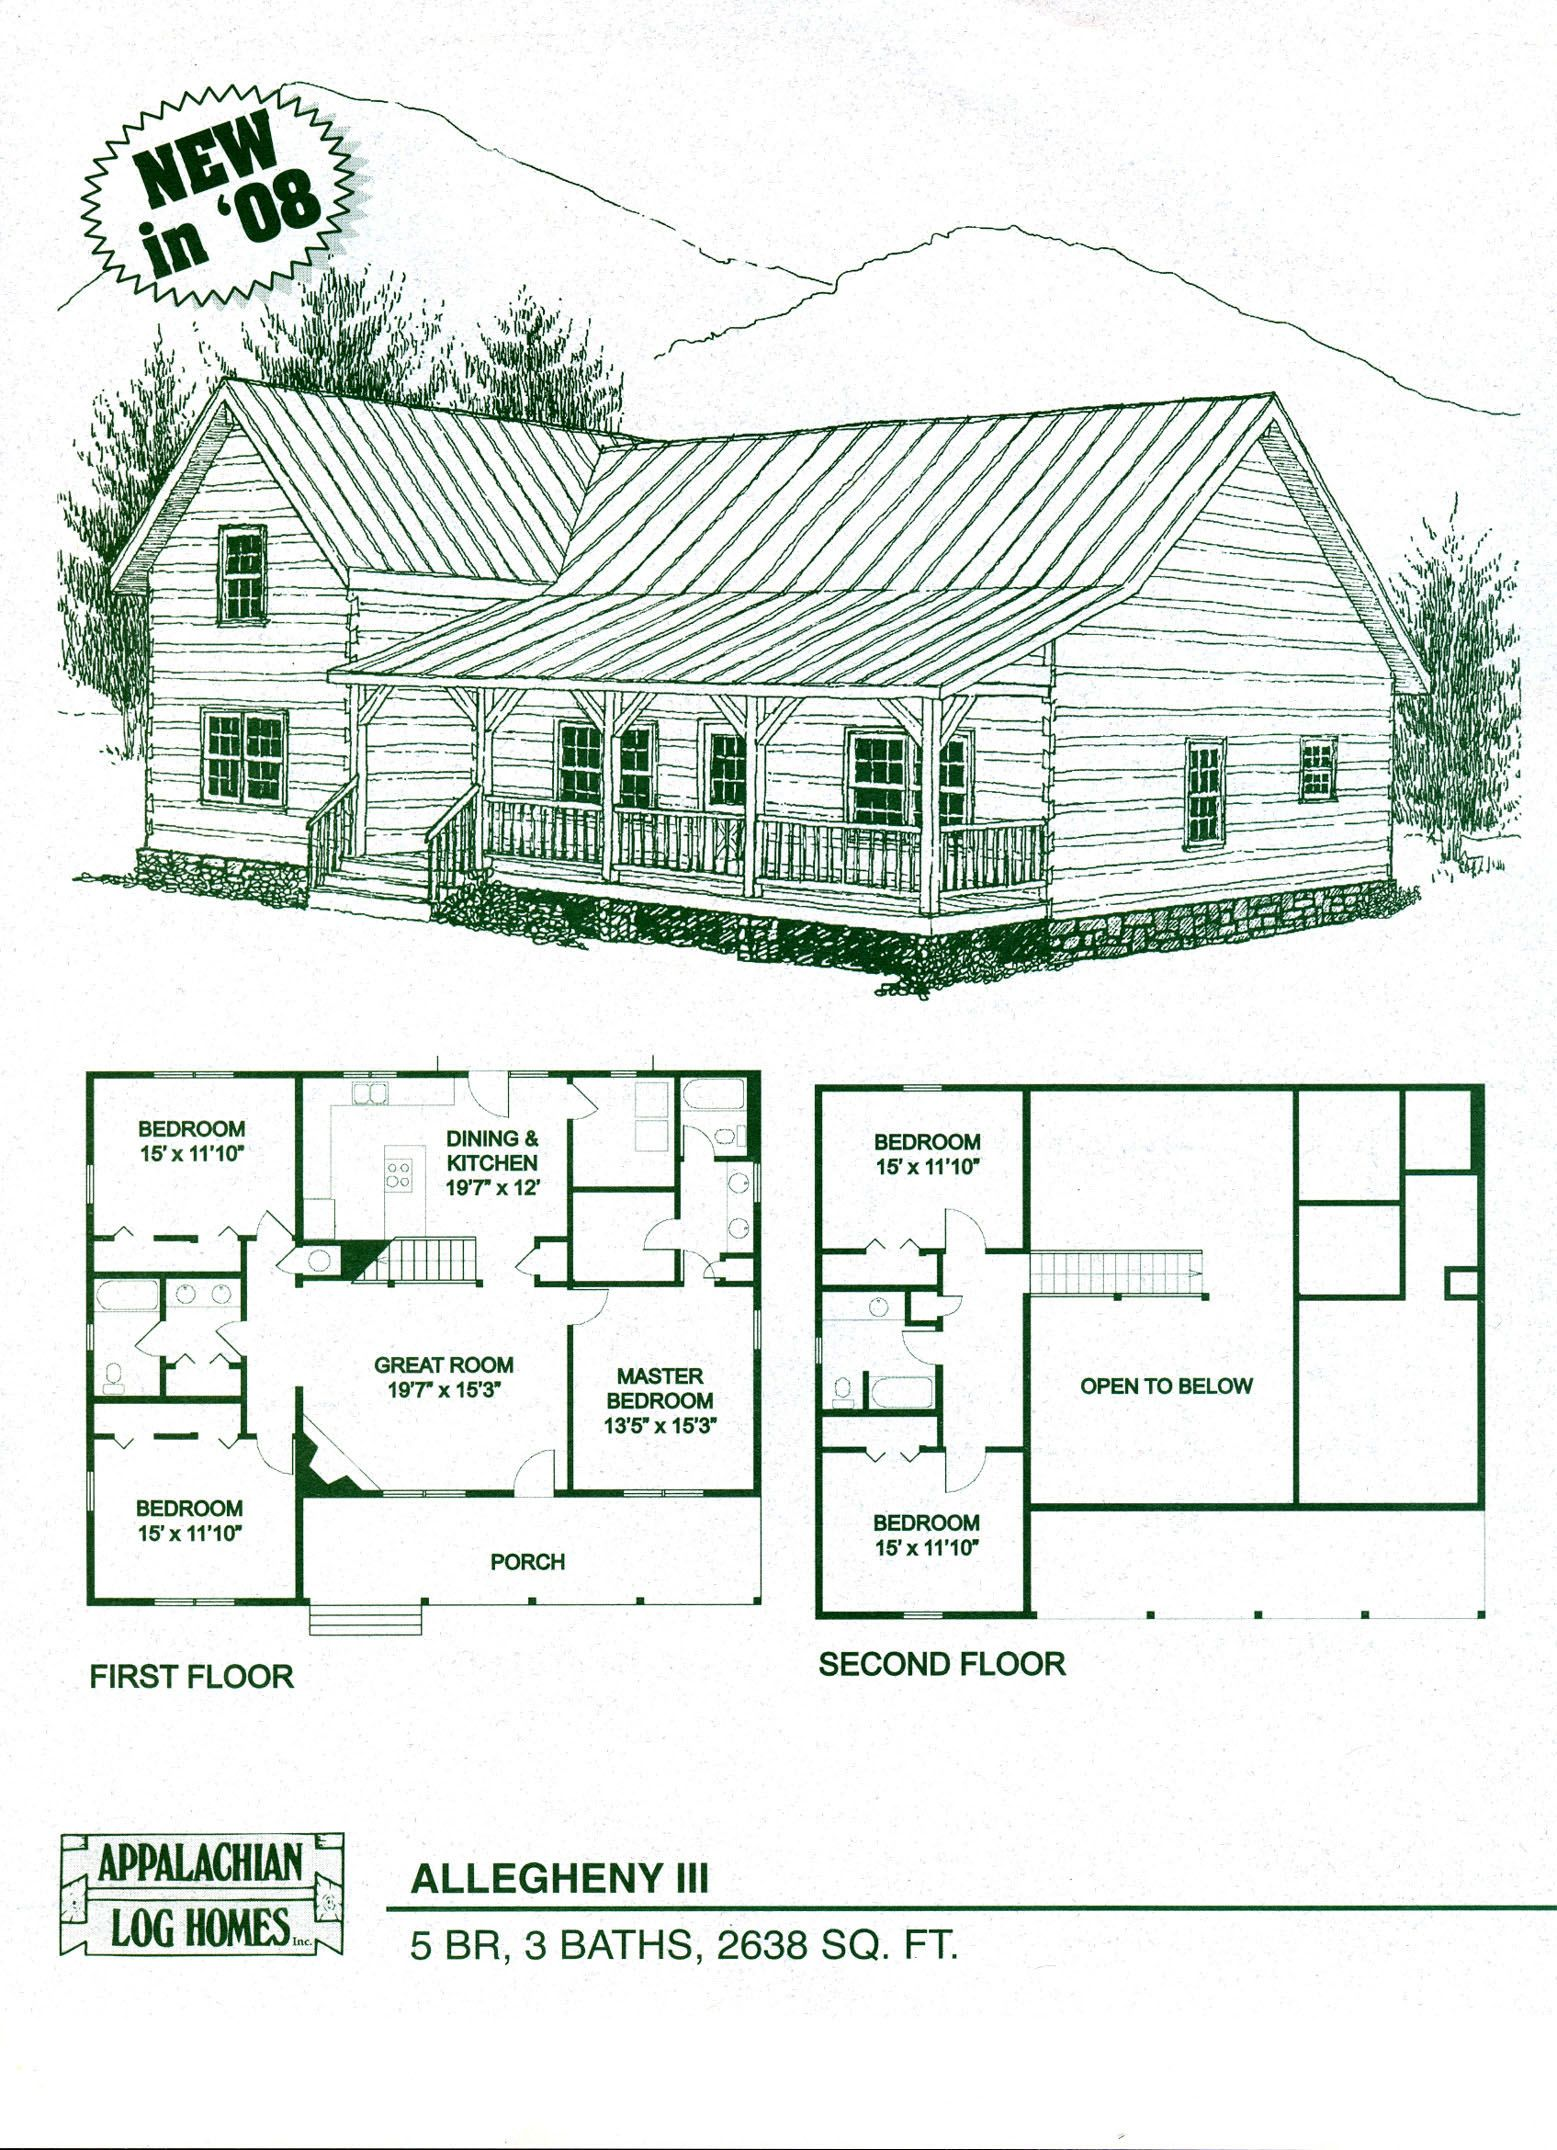 Log home floor plans log cabin kits appalachian log for Log cabin home plans designs